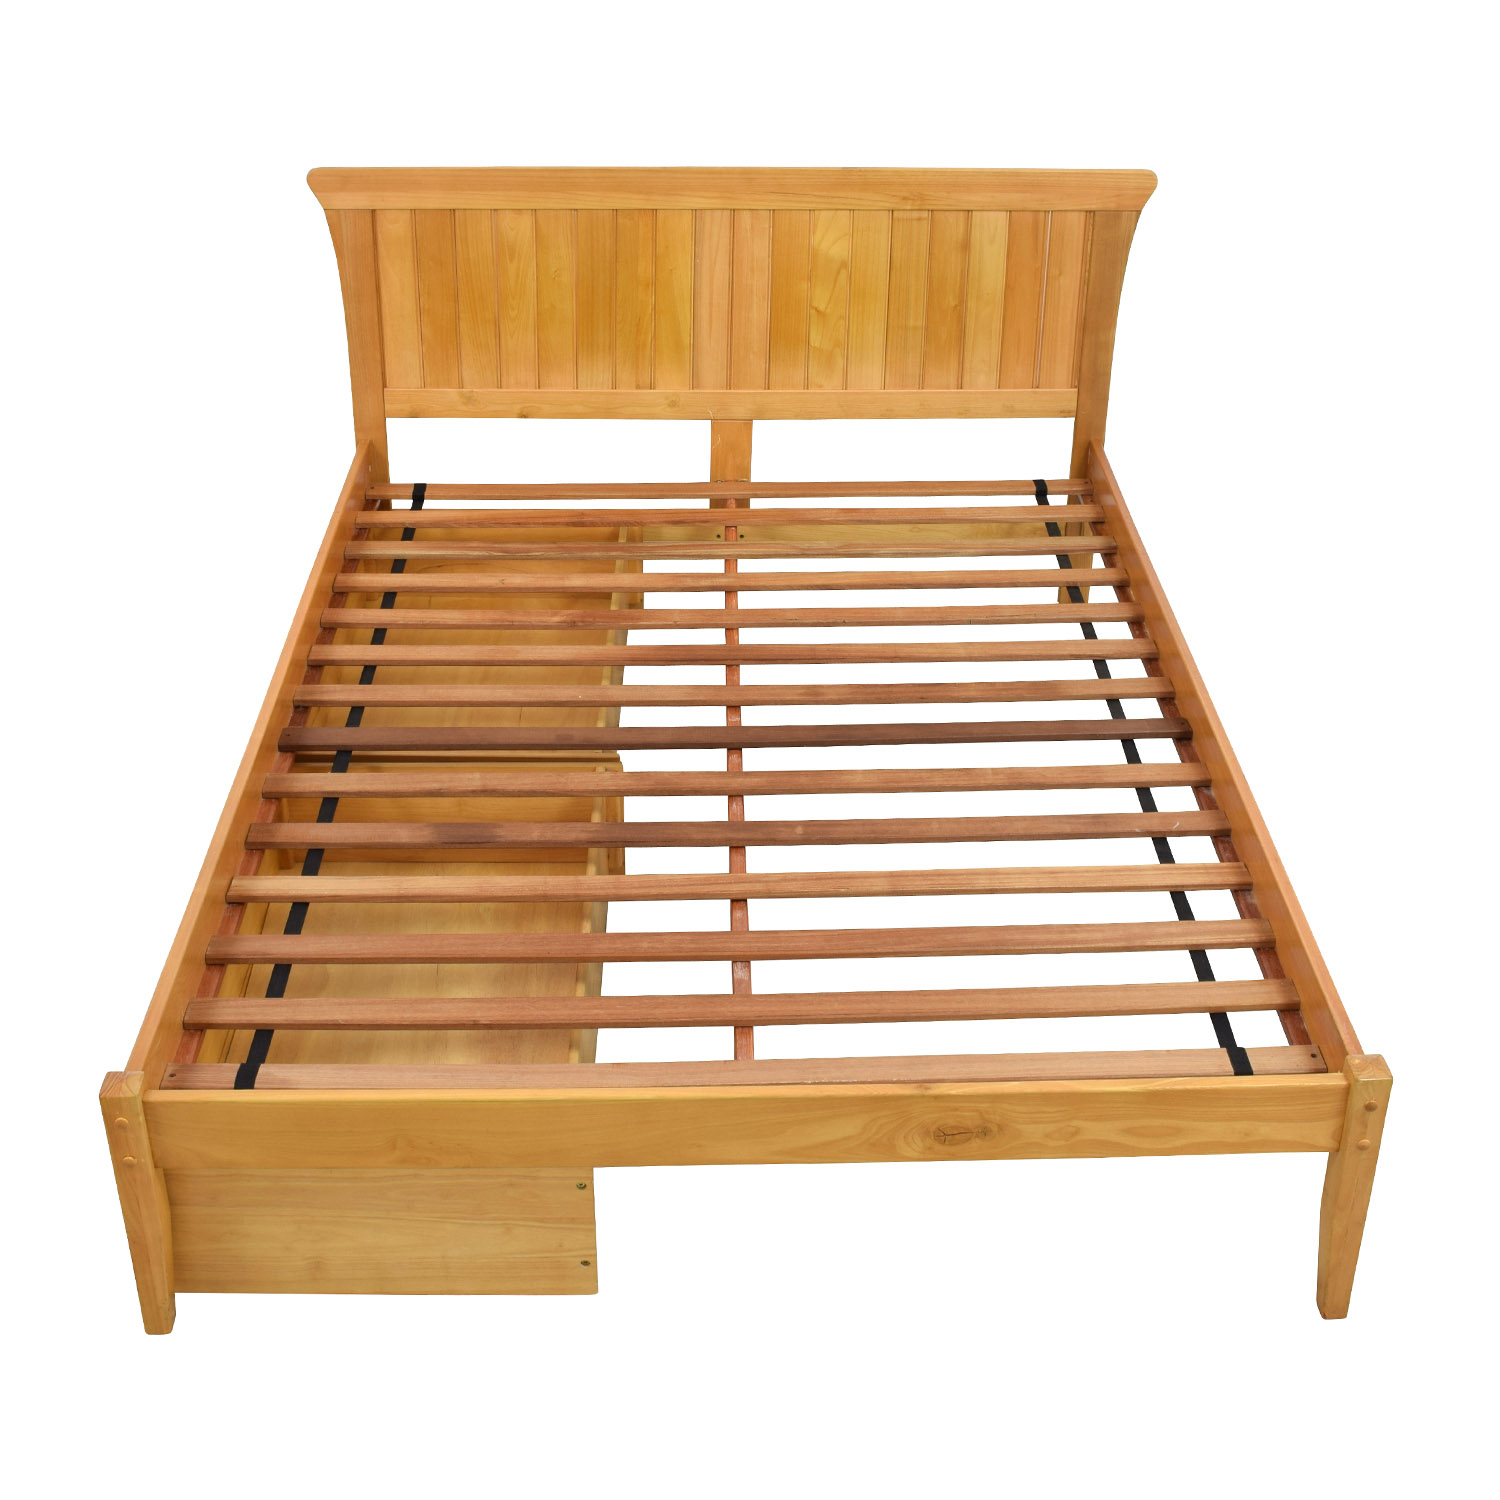 Solid Wood Bedframe with Storage nyc